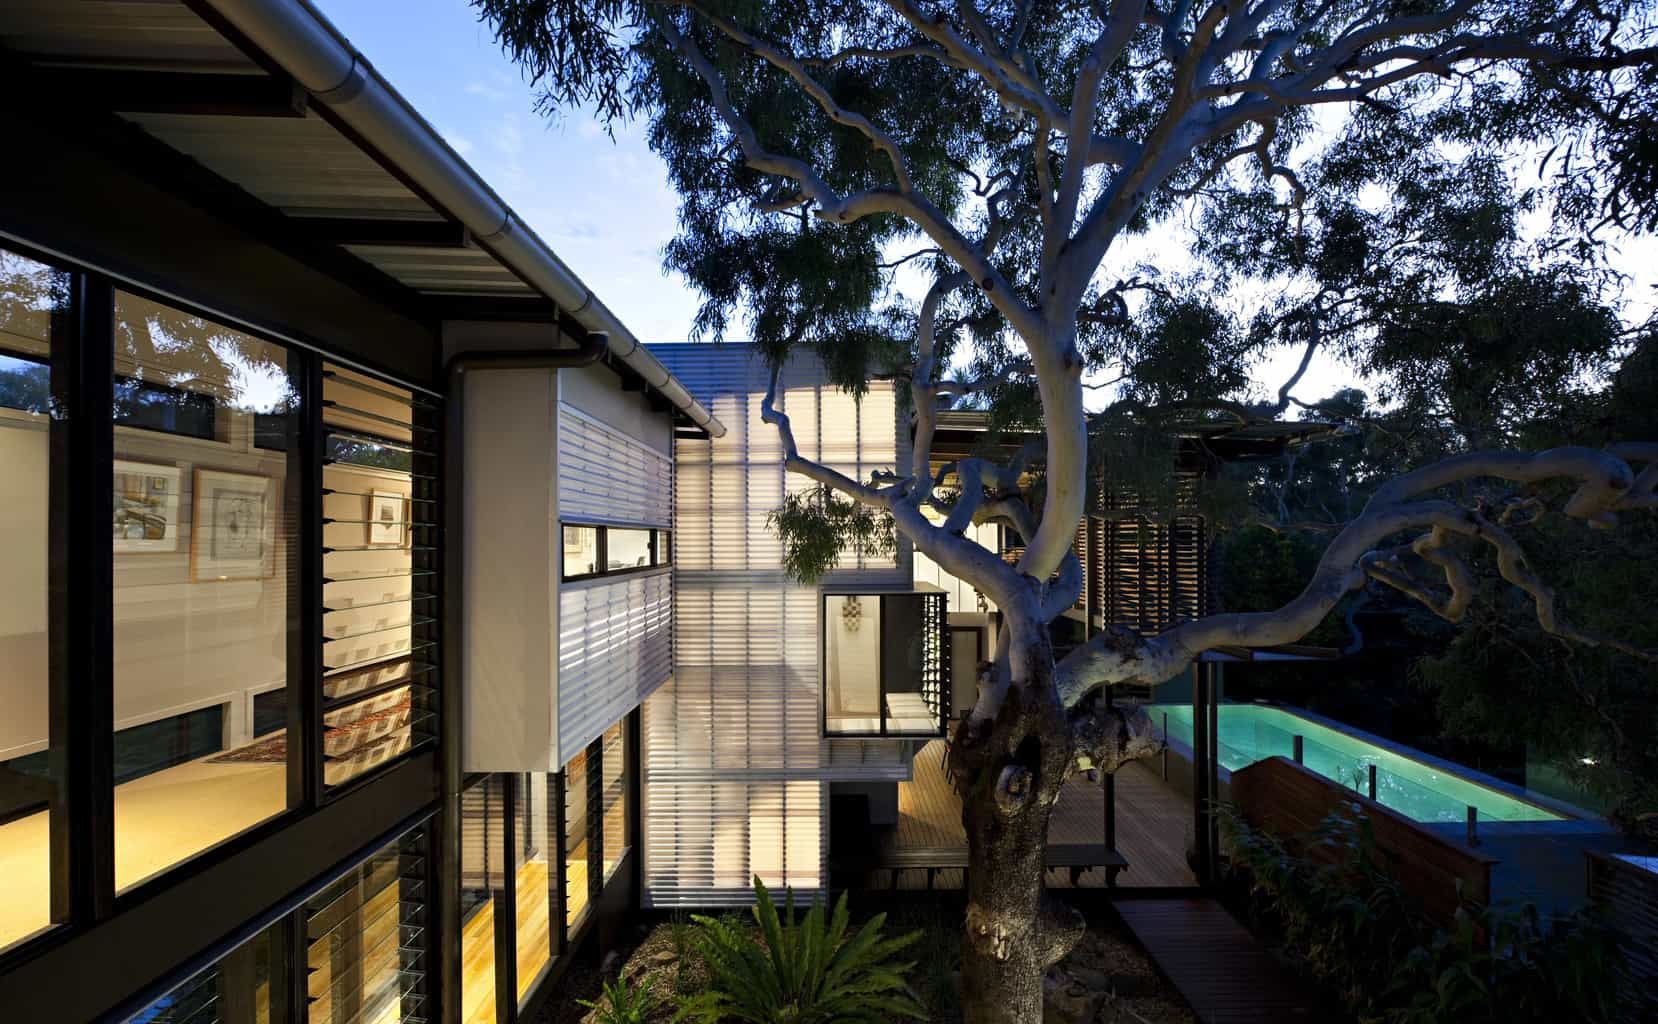 Treehouse architecture by Marcus Beach